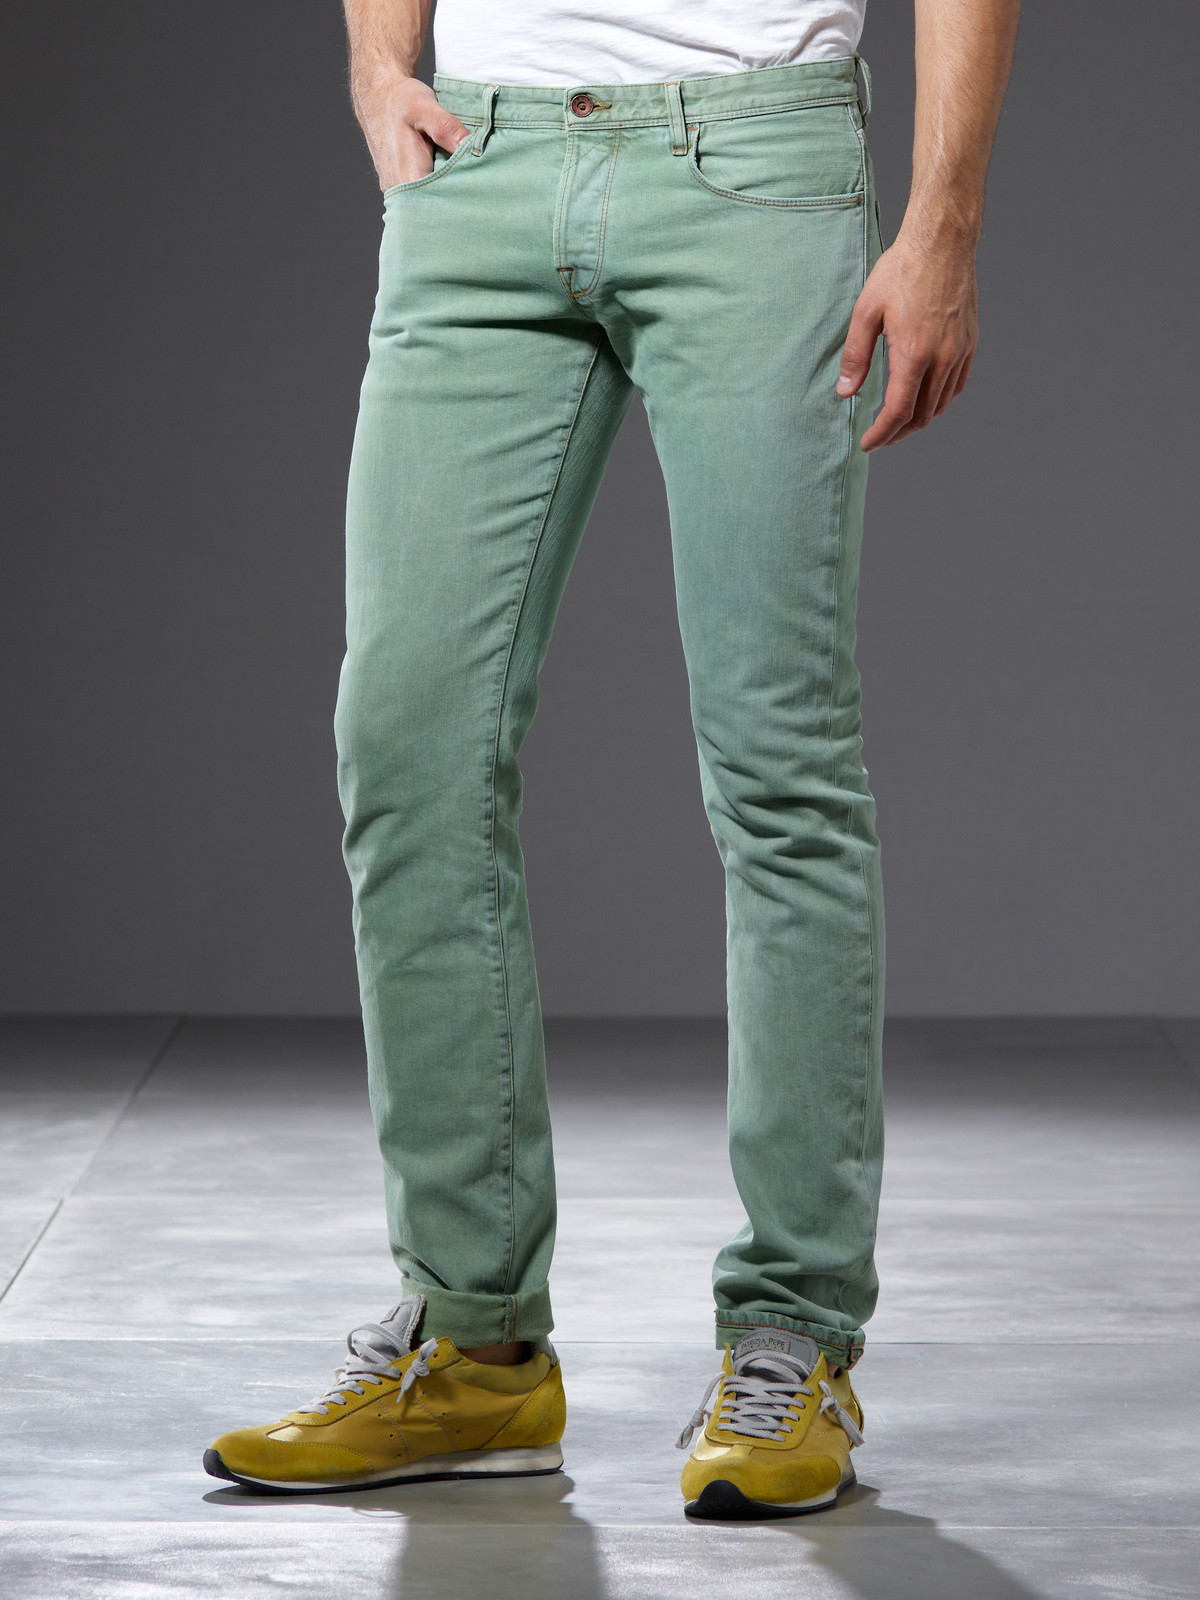 Mens Clothing Trends 2013